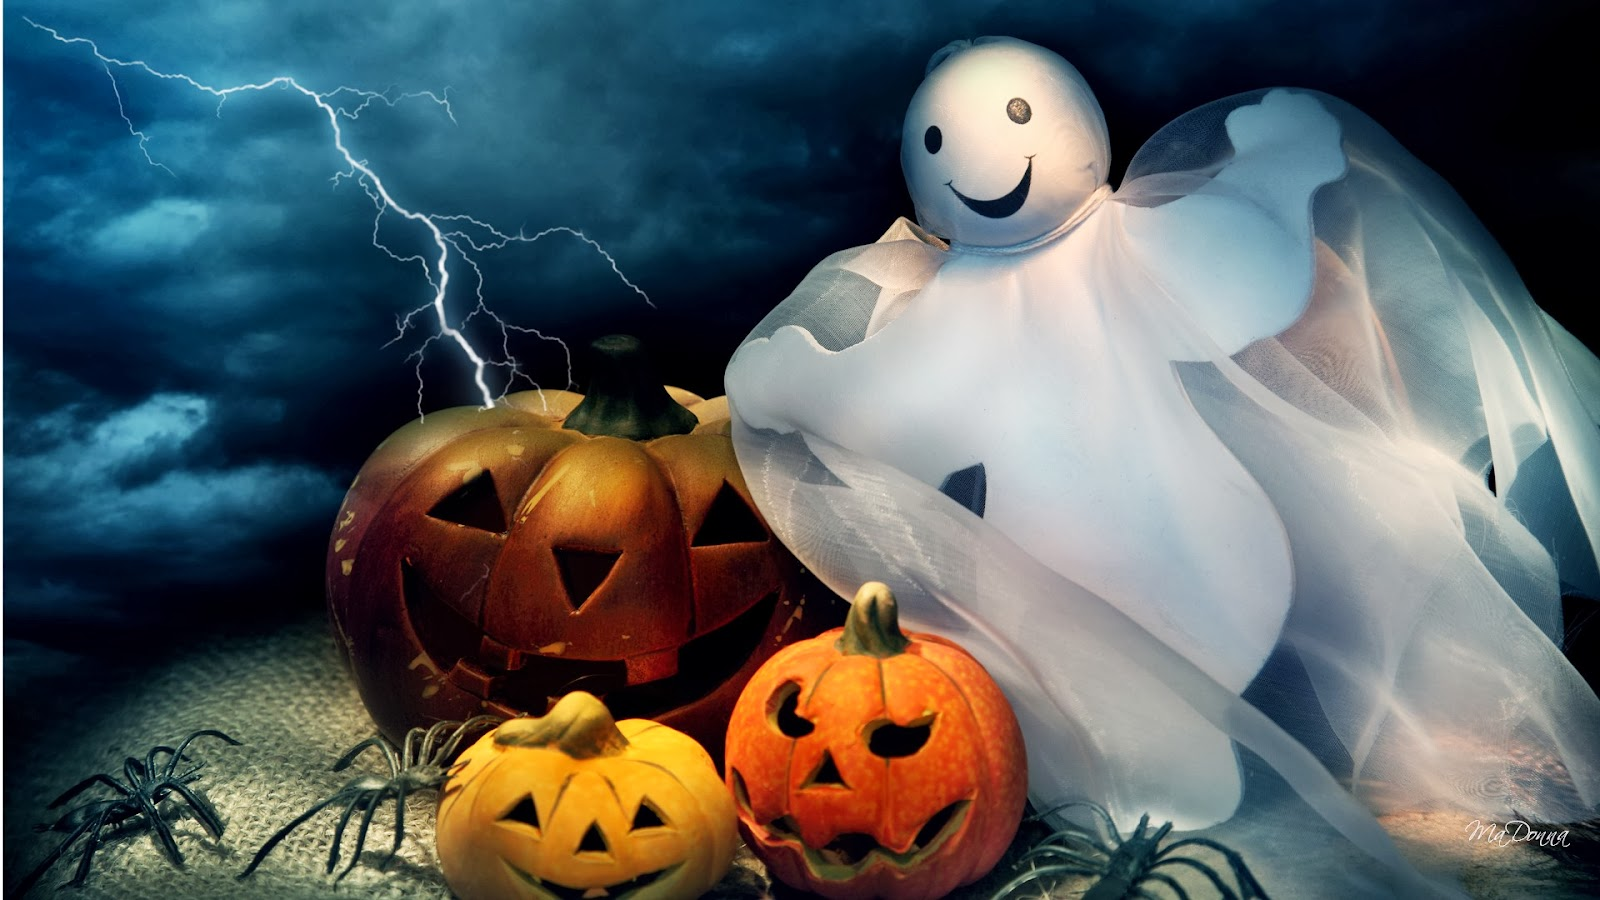 hot halloween wallpapers - photo #35